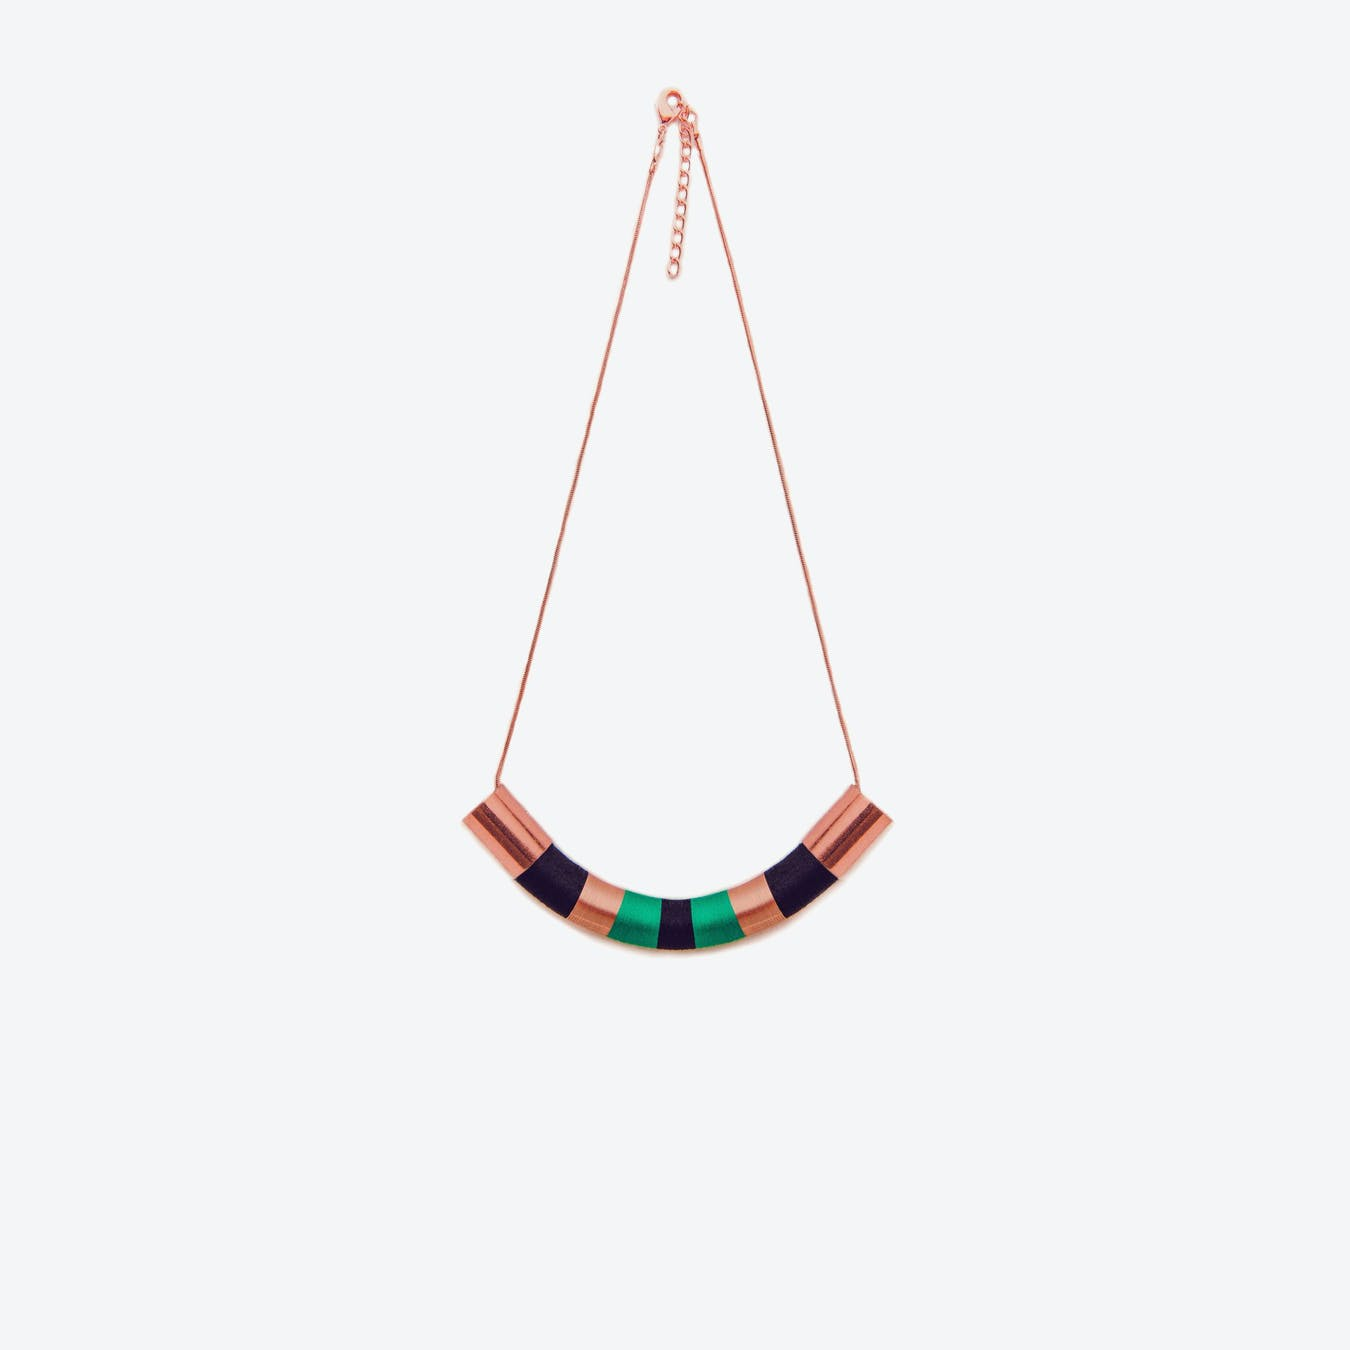 TOOBA.S Necklace N°3